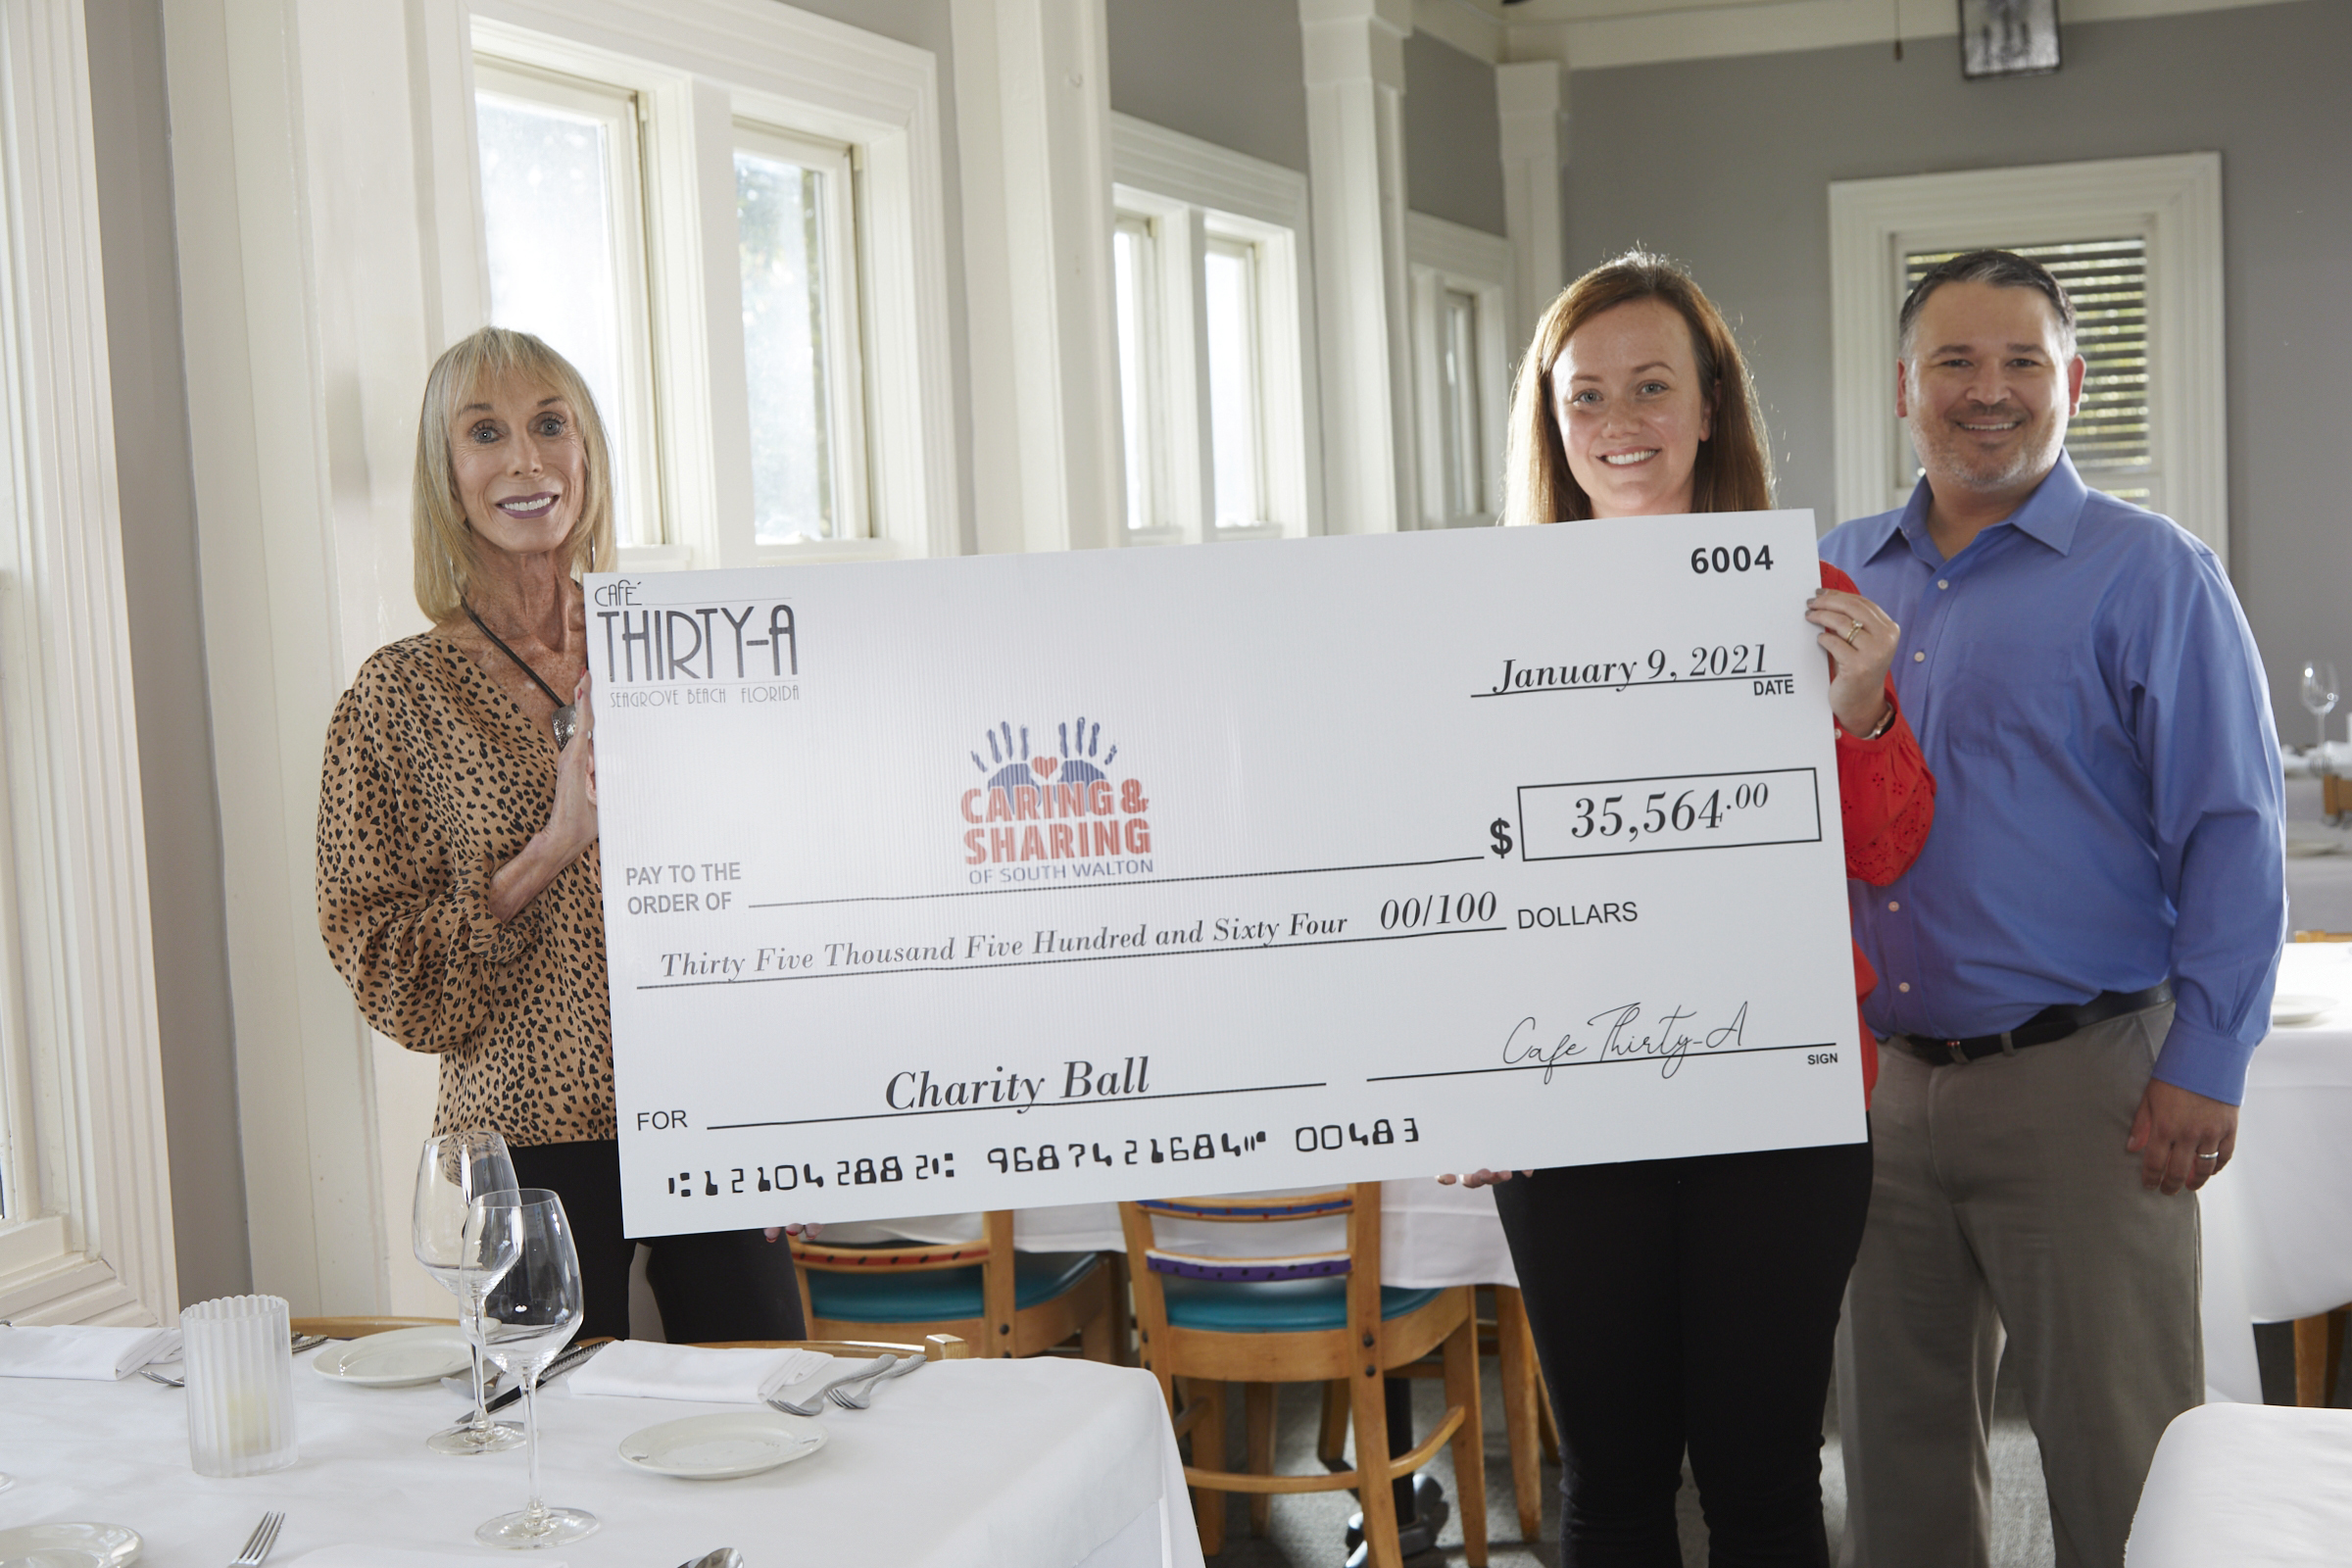 Café Thirty-A Raises Record-Breaking $35,564 for Caring and Sharing of South Walton